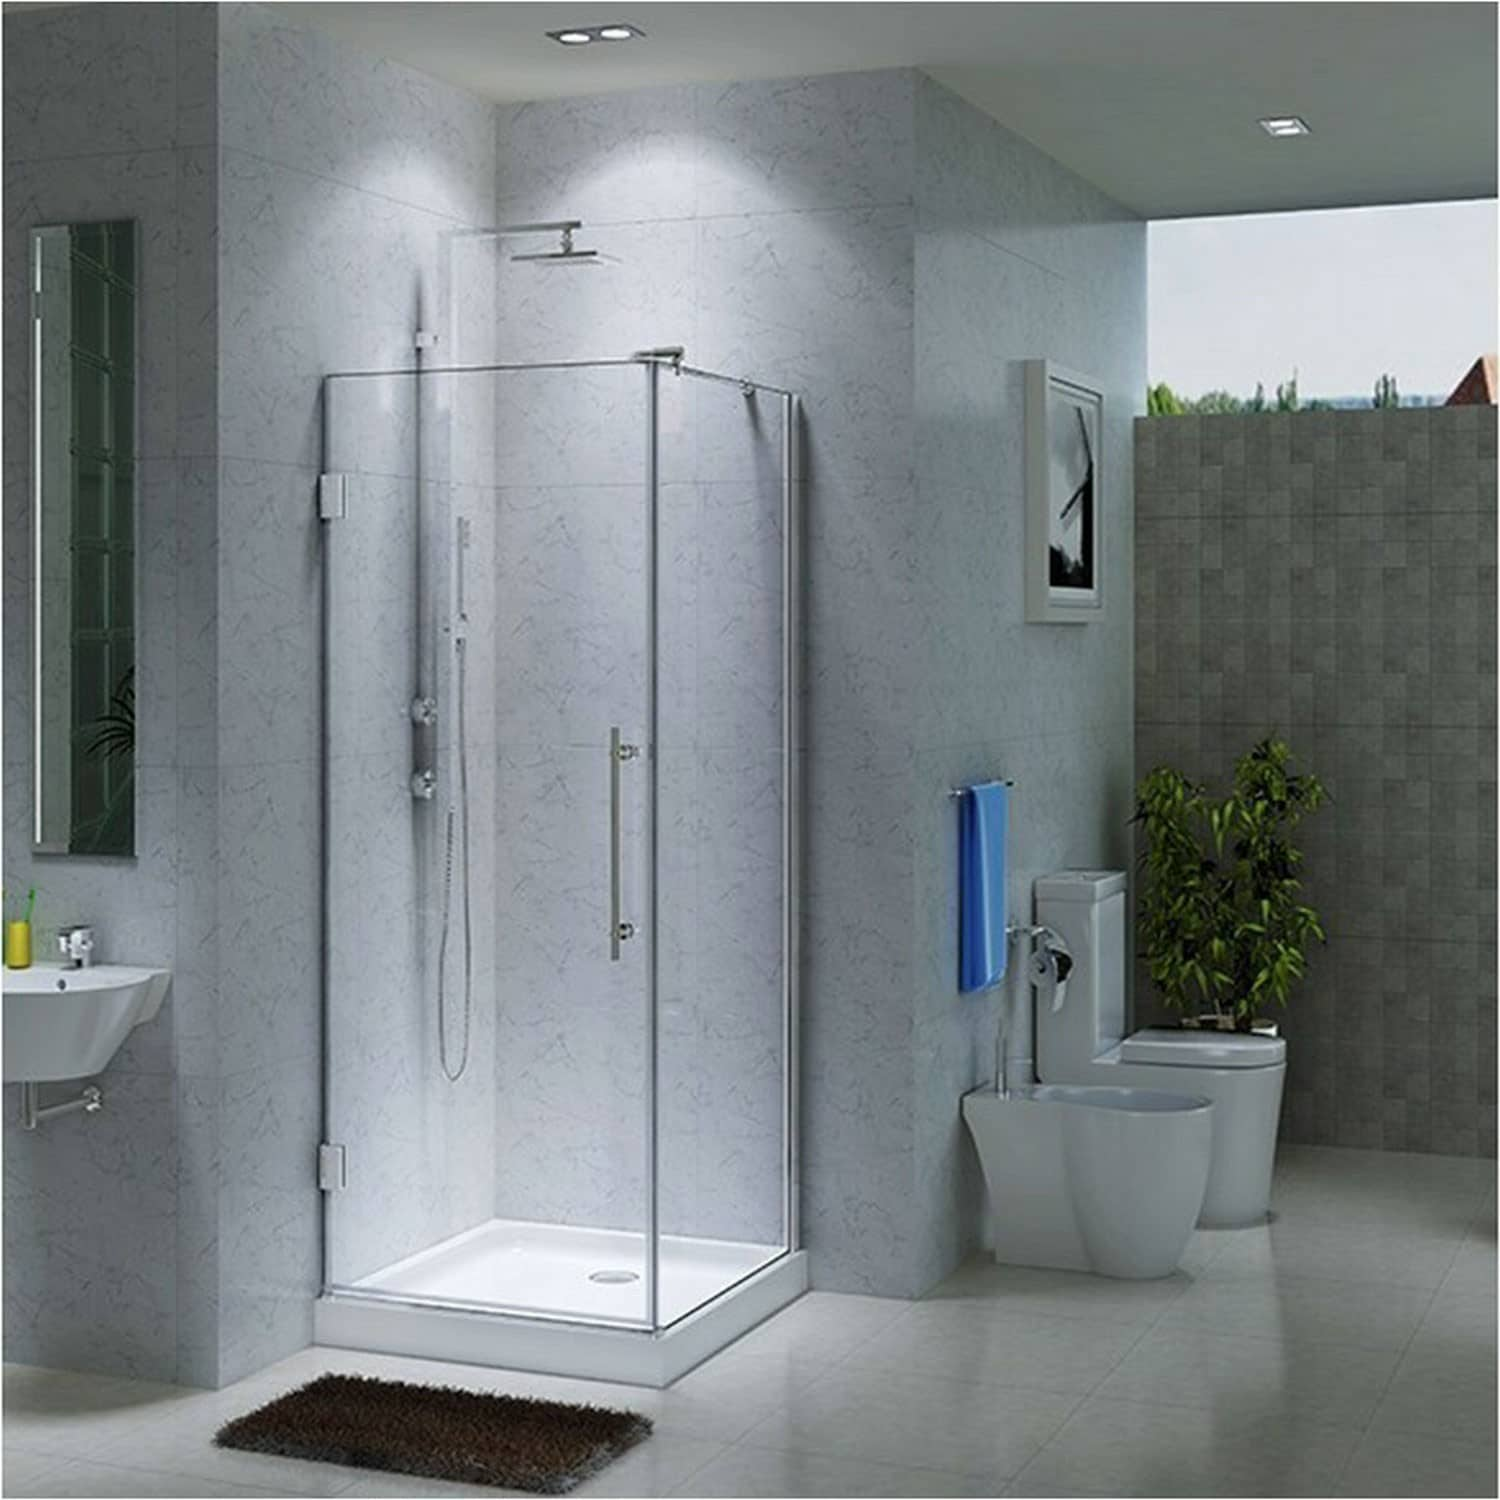 corner shower stalls. Best Shower Enclosure Kits Corner Stalls L